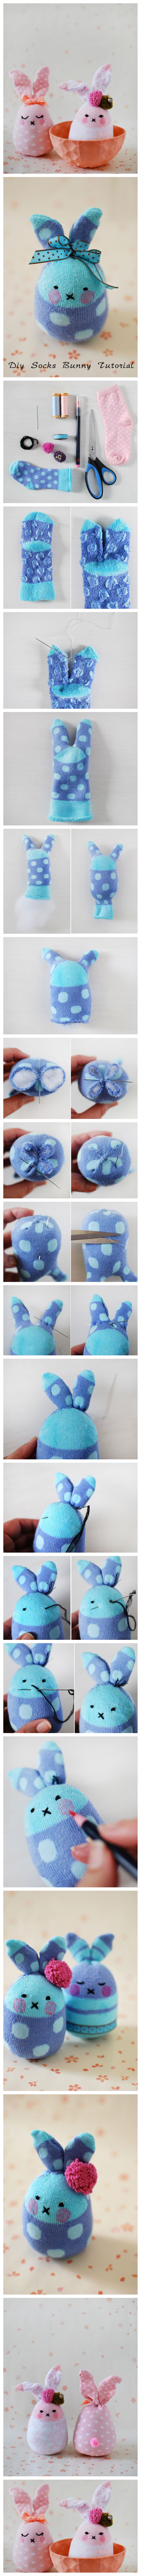 Diy Socks Bunny Tutorial